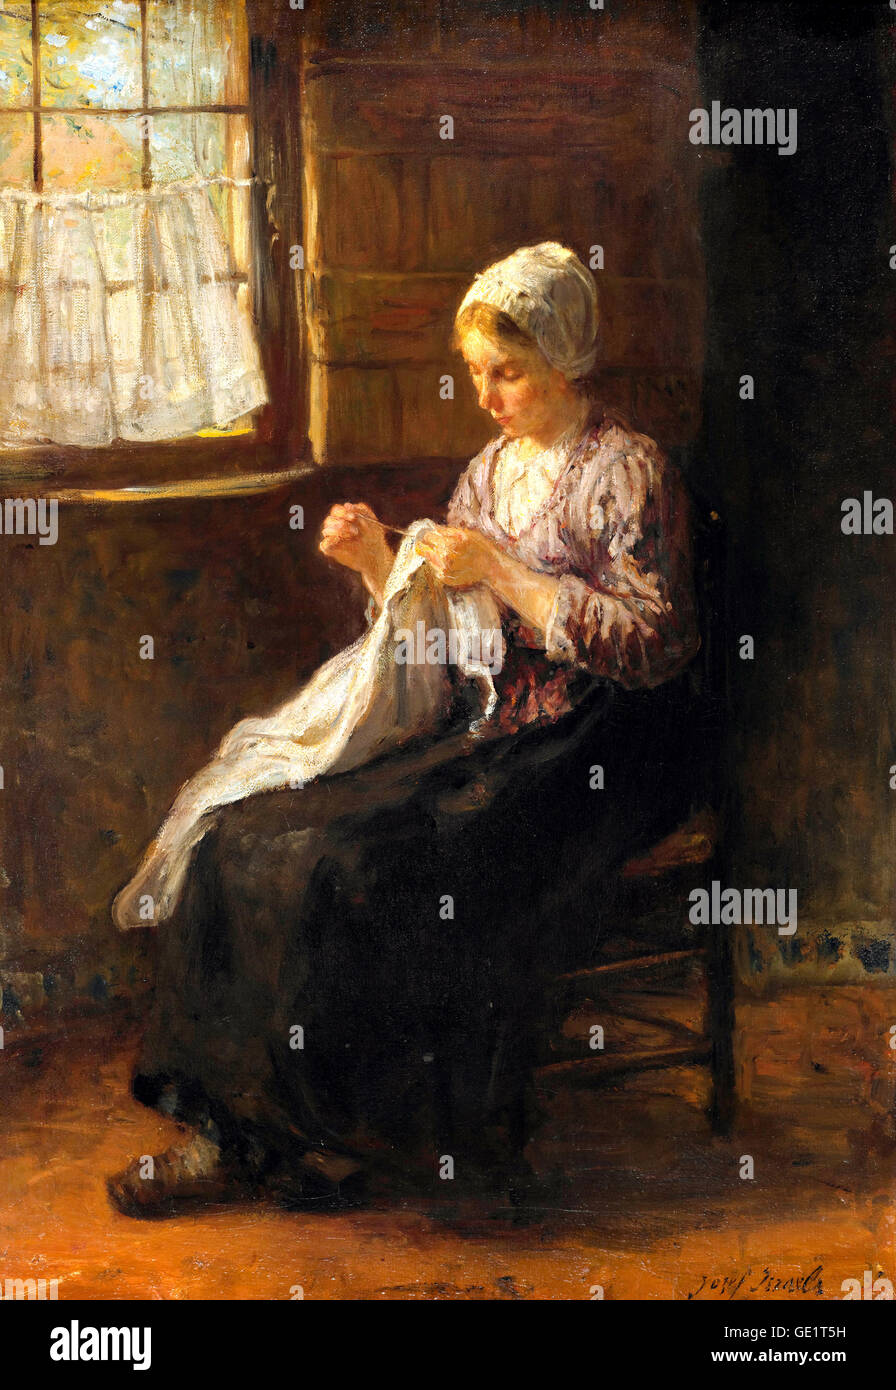 Jozef Israels, The Young Seamstress. Circa 1880. Oil on canvas. Gemeentemuseum Den Haag, The Hague, Netherlands. - Stock Image